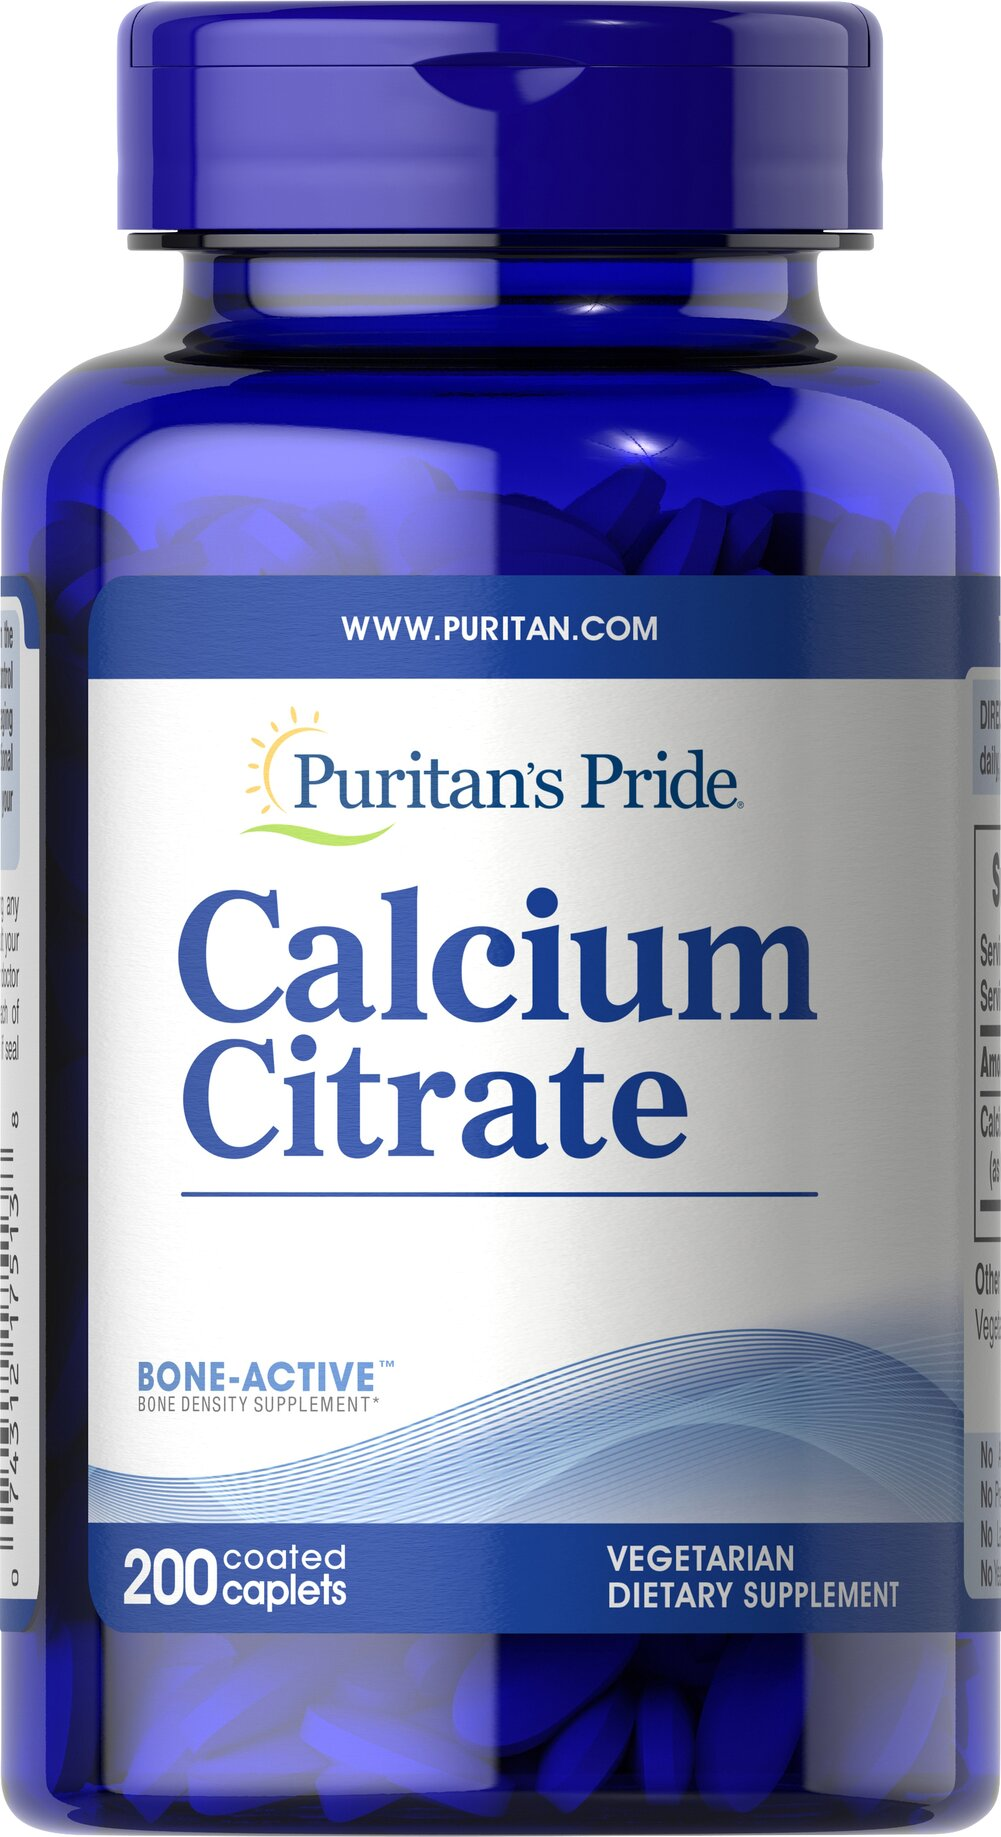 Calcium Citrate 200 mg <p>Bone health can be dependent on many factors including heredity, diet, exercise and lifestyle. Because the body cannot produce Calcium, a balanced diet, regular exercise, healthy lifestyle choices and adequate intake of Calcium can play a role in maintaining bone health.** The body also uses Calcium for proper muscle contraction and nerve function.**</p>  200 Caplets 200 mg $18.99